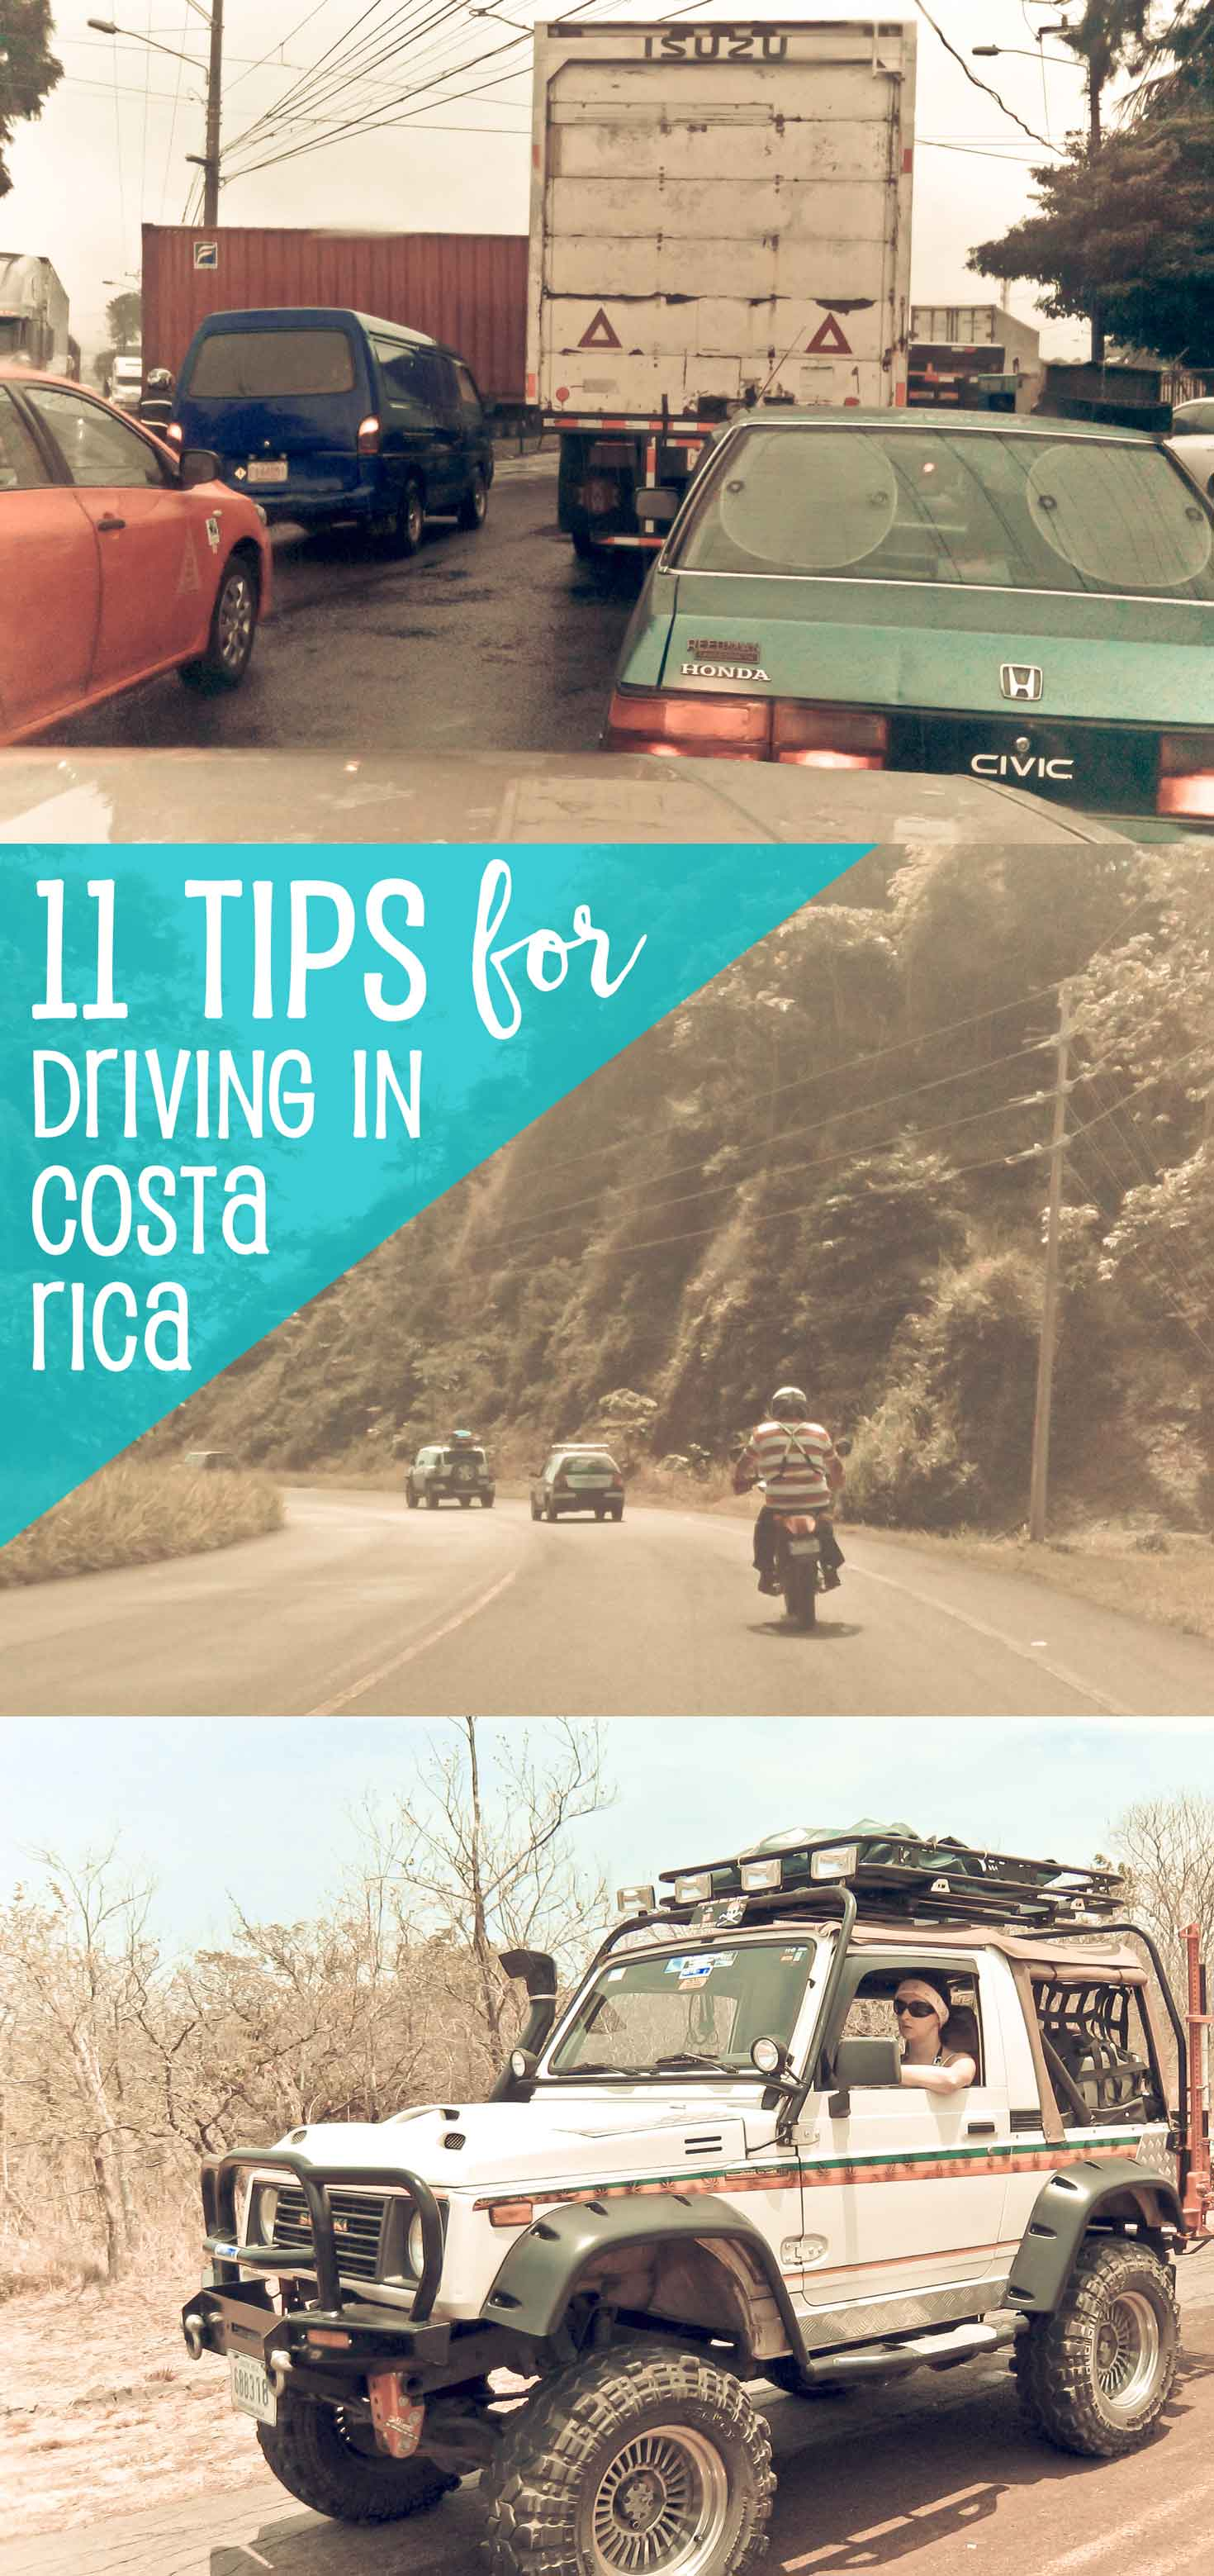 11 tips for driving in costa rica